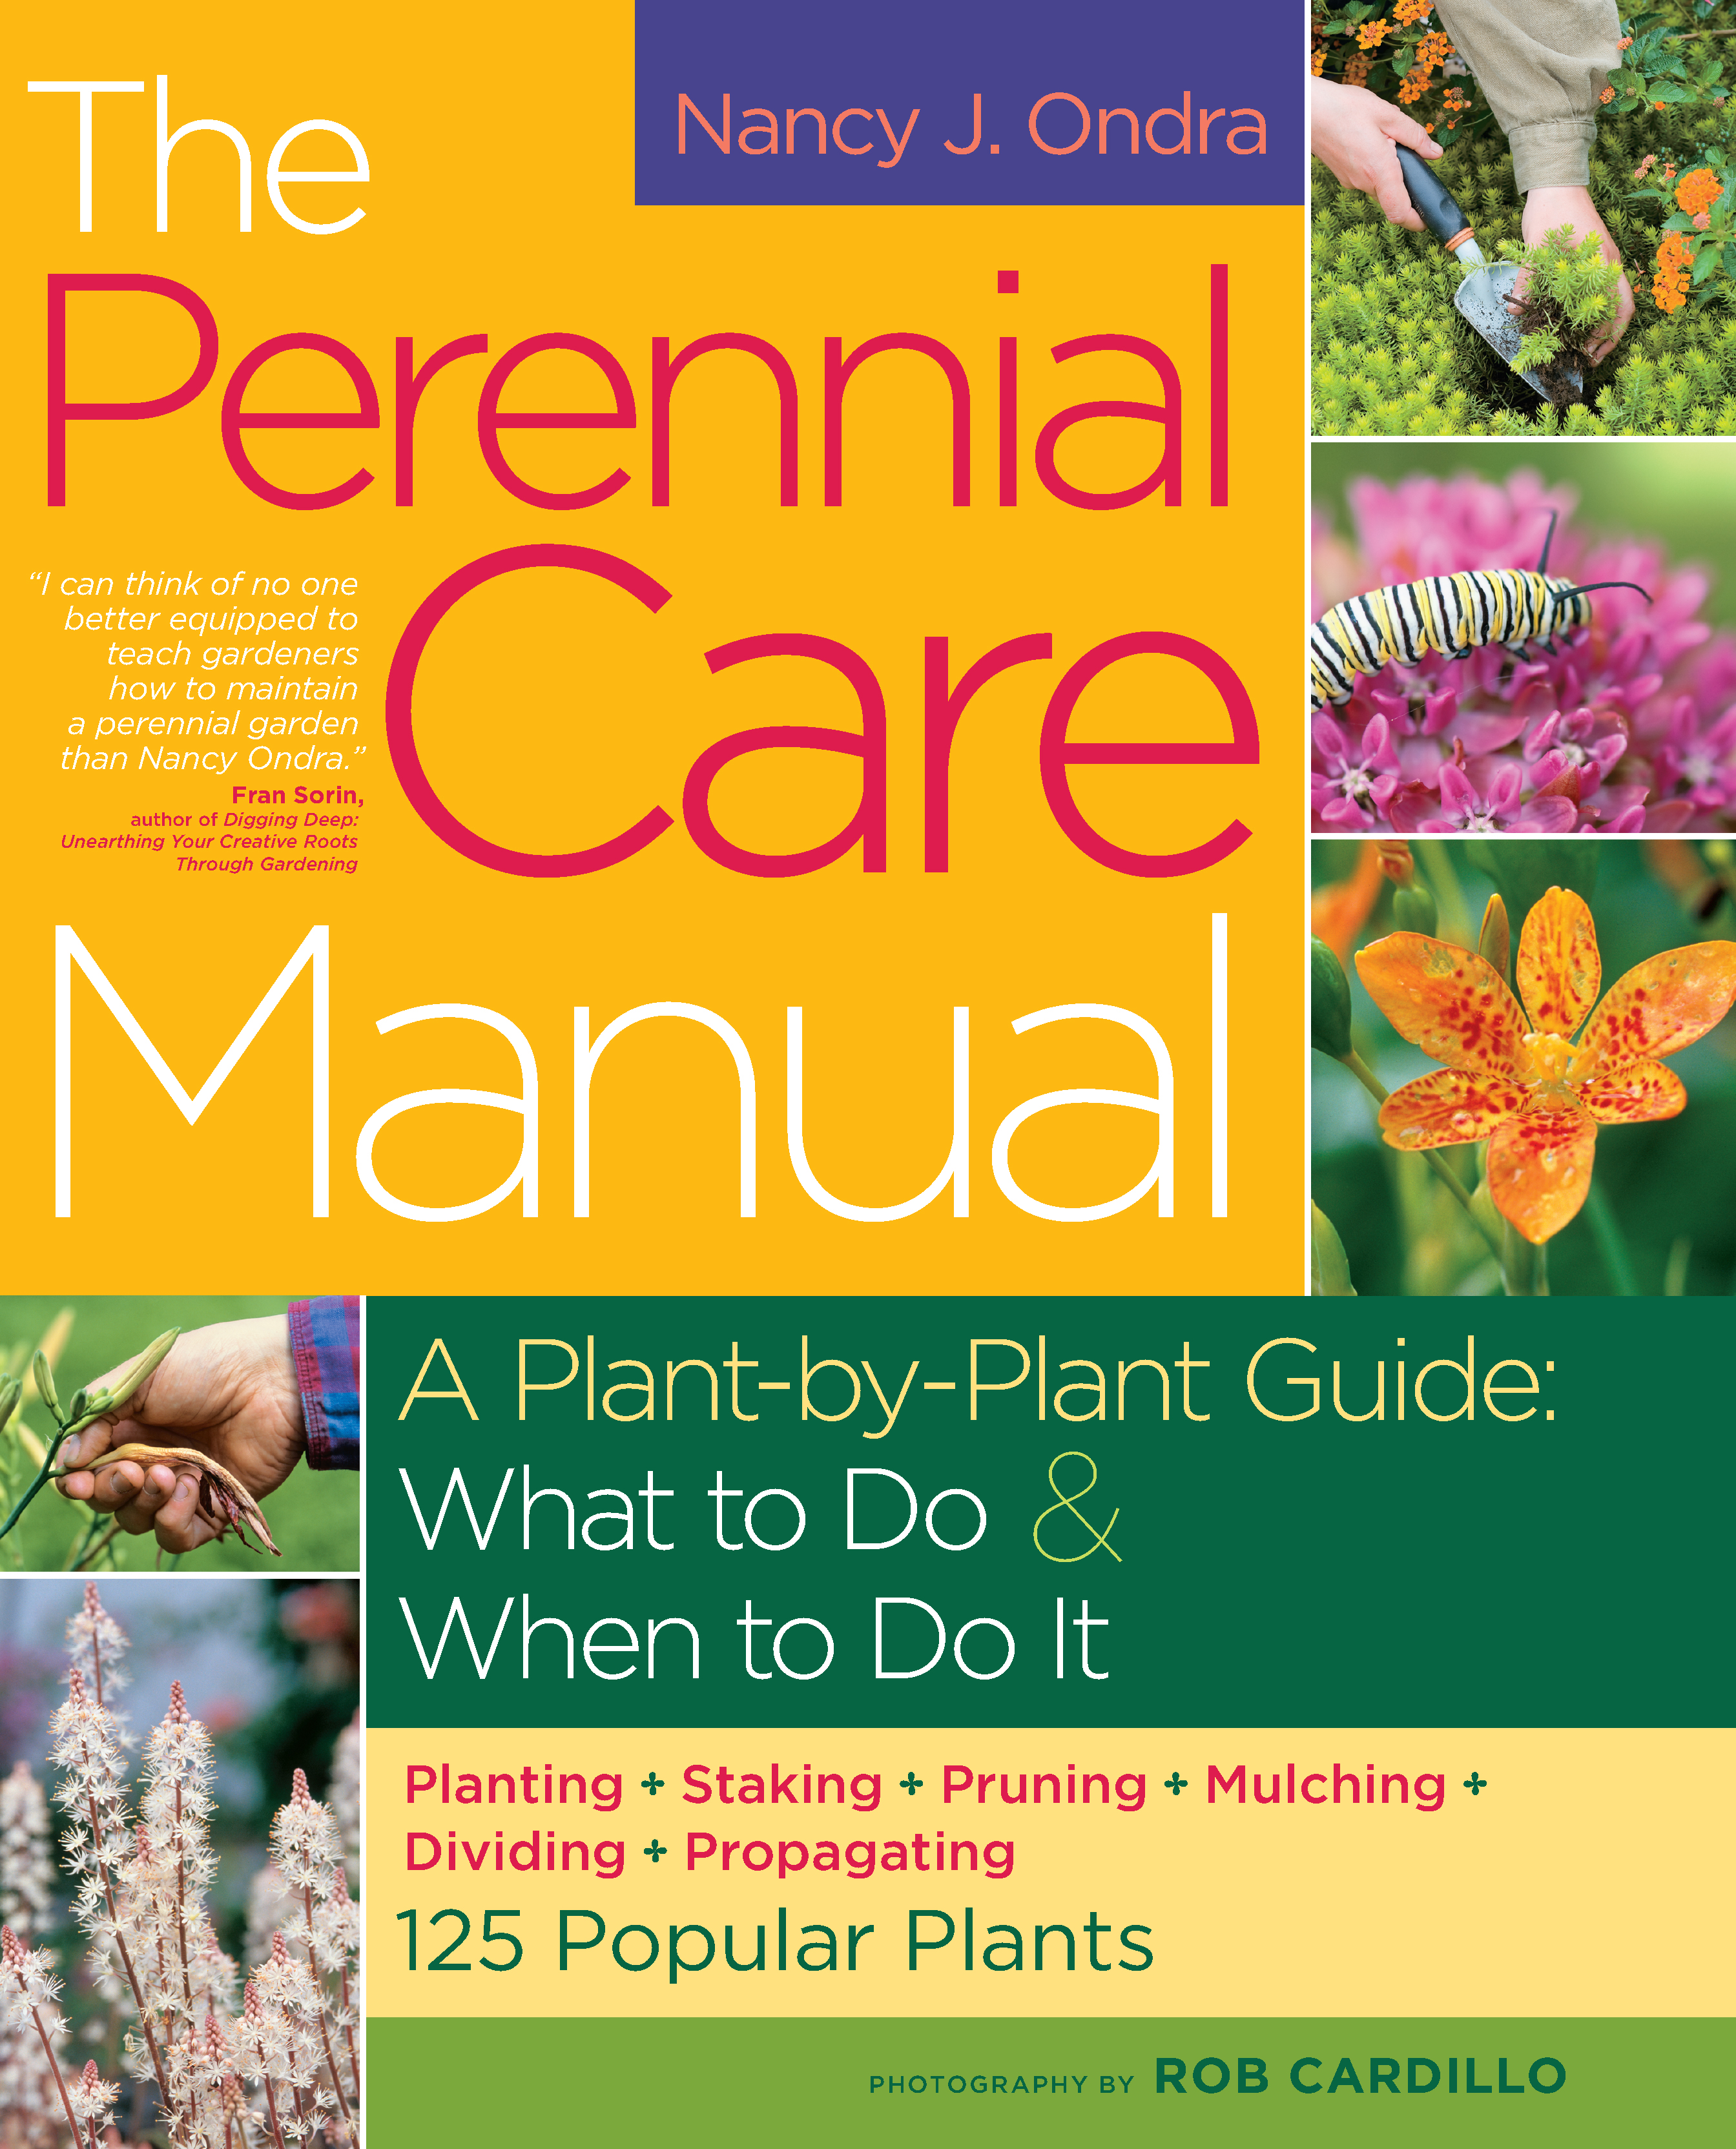 The Perennial Care Manual A Plant-by-Plant Guide: What to Do & When to Do It  - Rob Cardillo